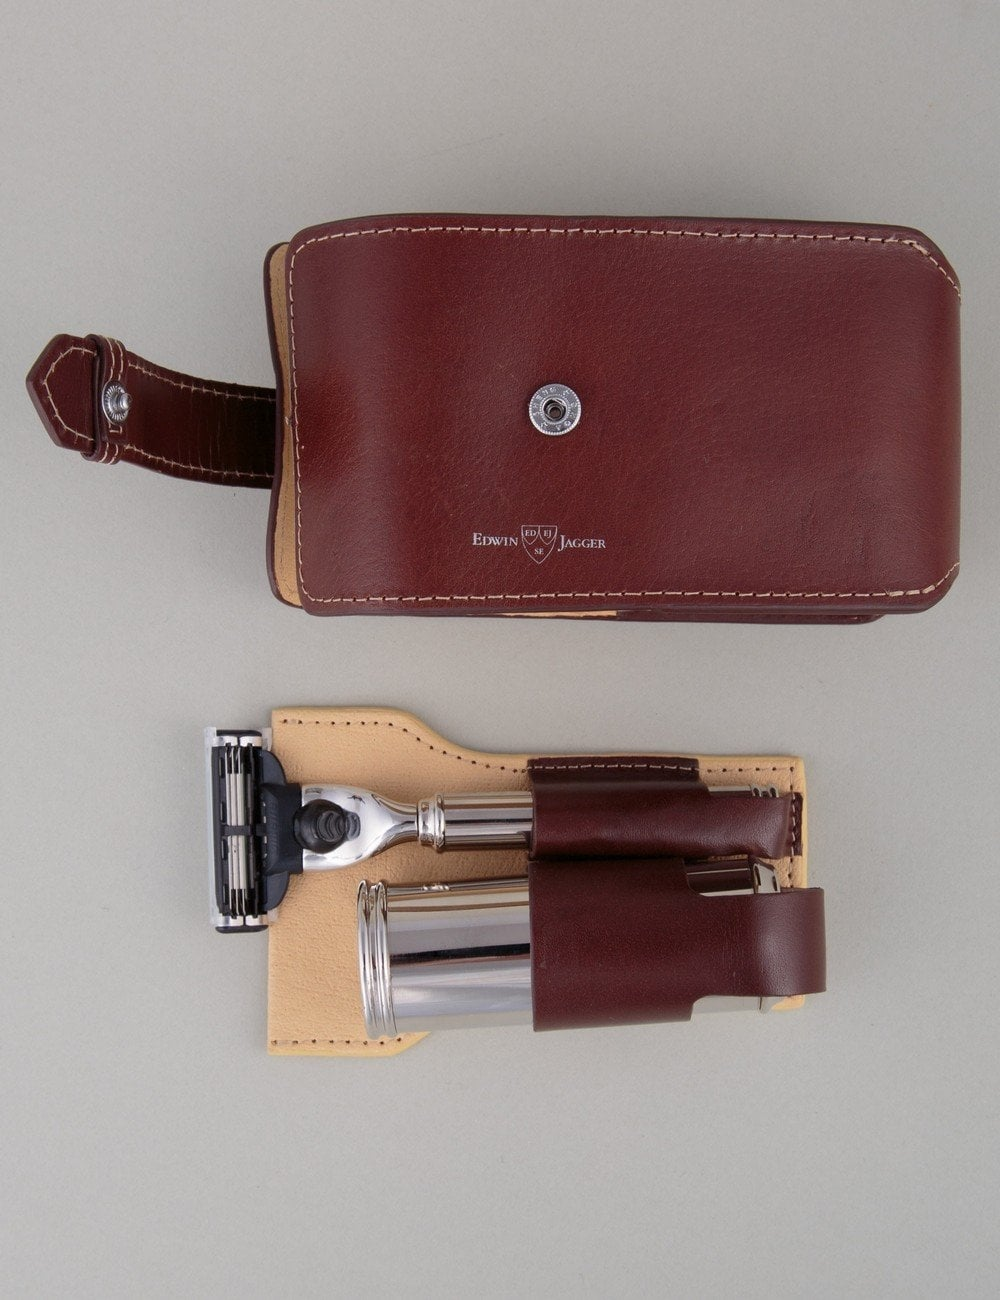 b4d867a4ce Edwin Jagger Travel Shaving Kit - Mach 3 (Brown Leather) - Mens ...